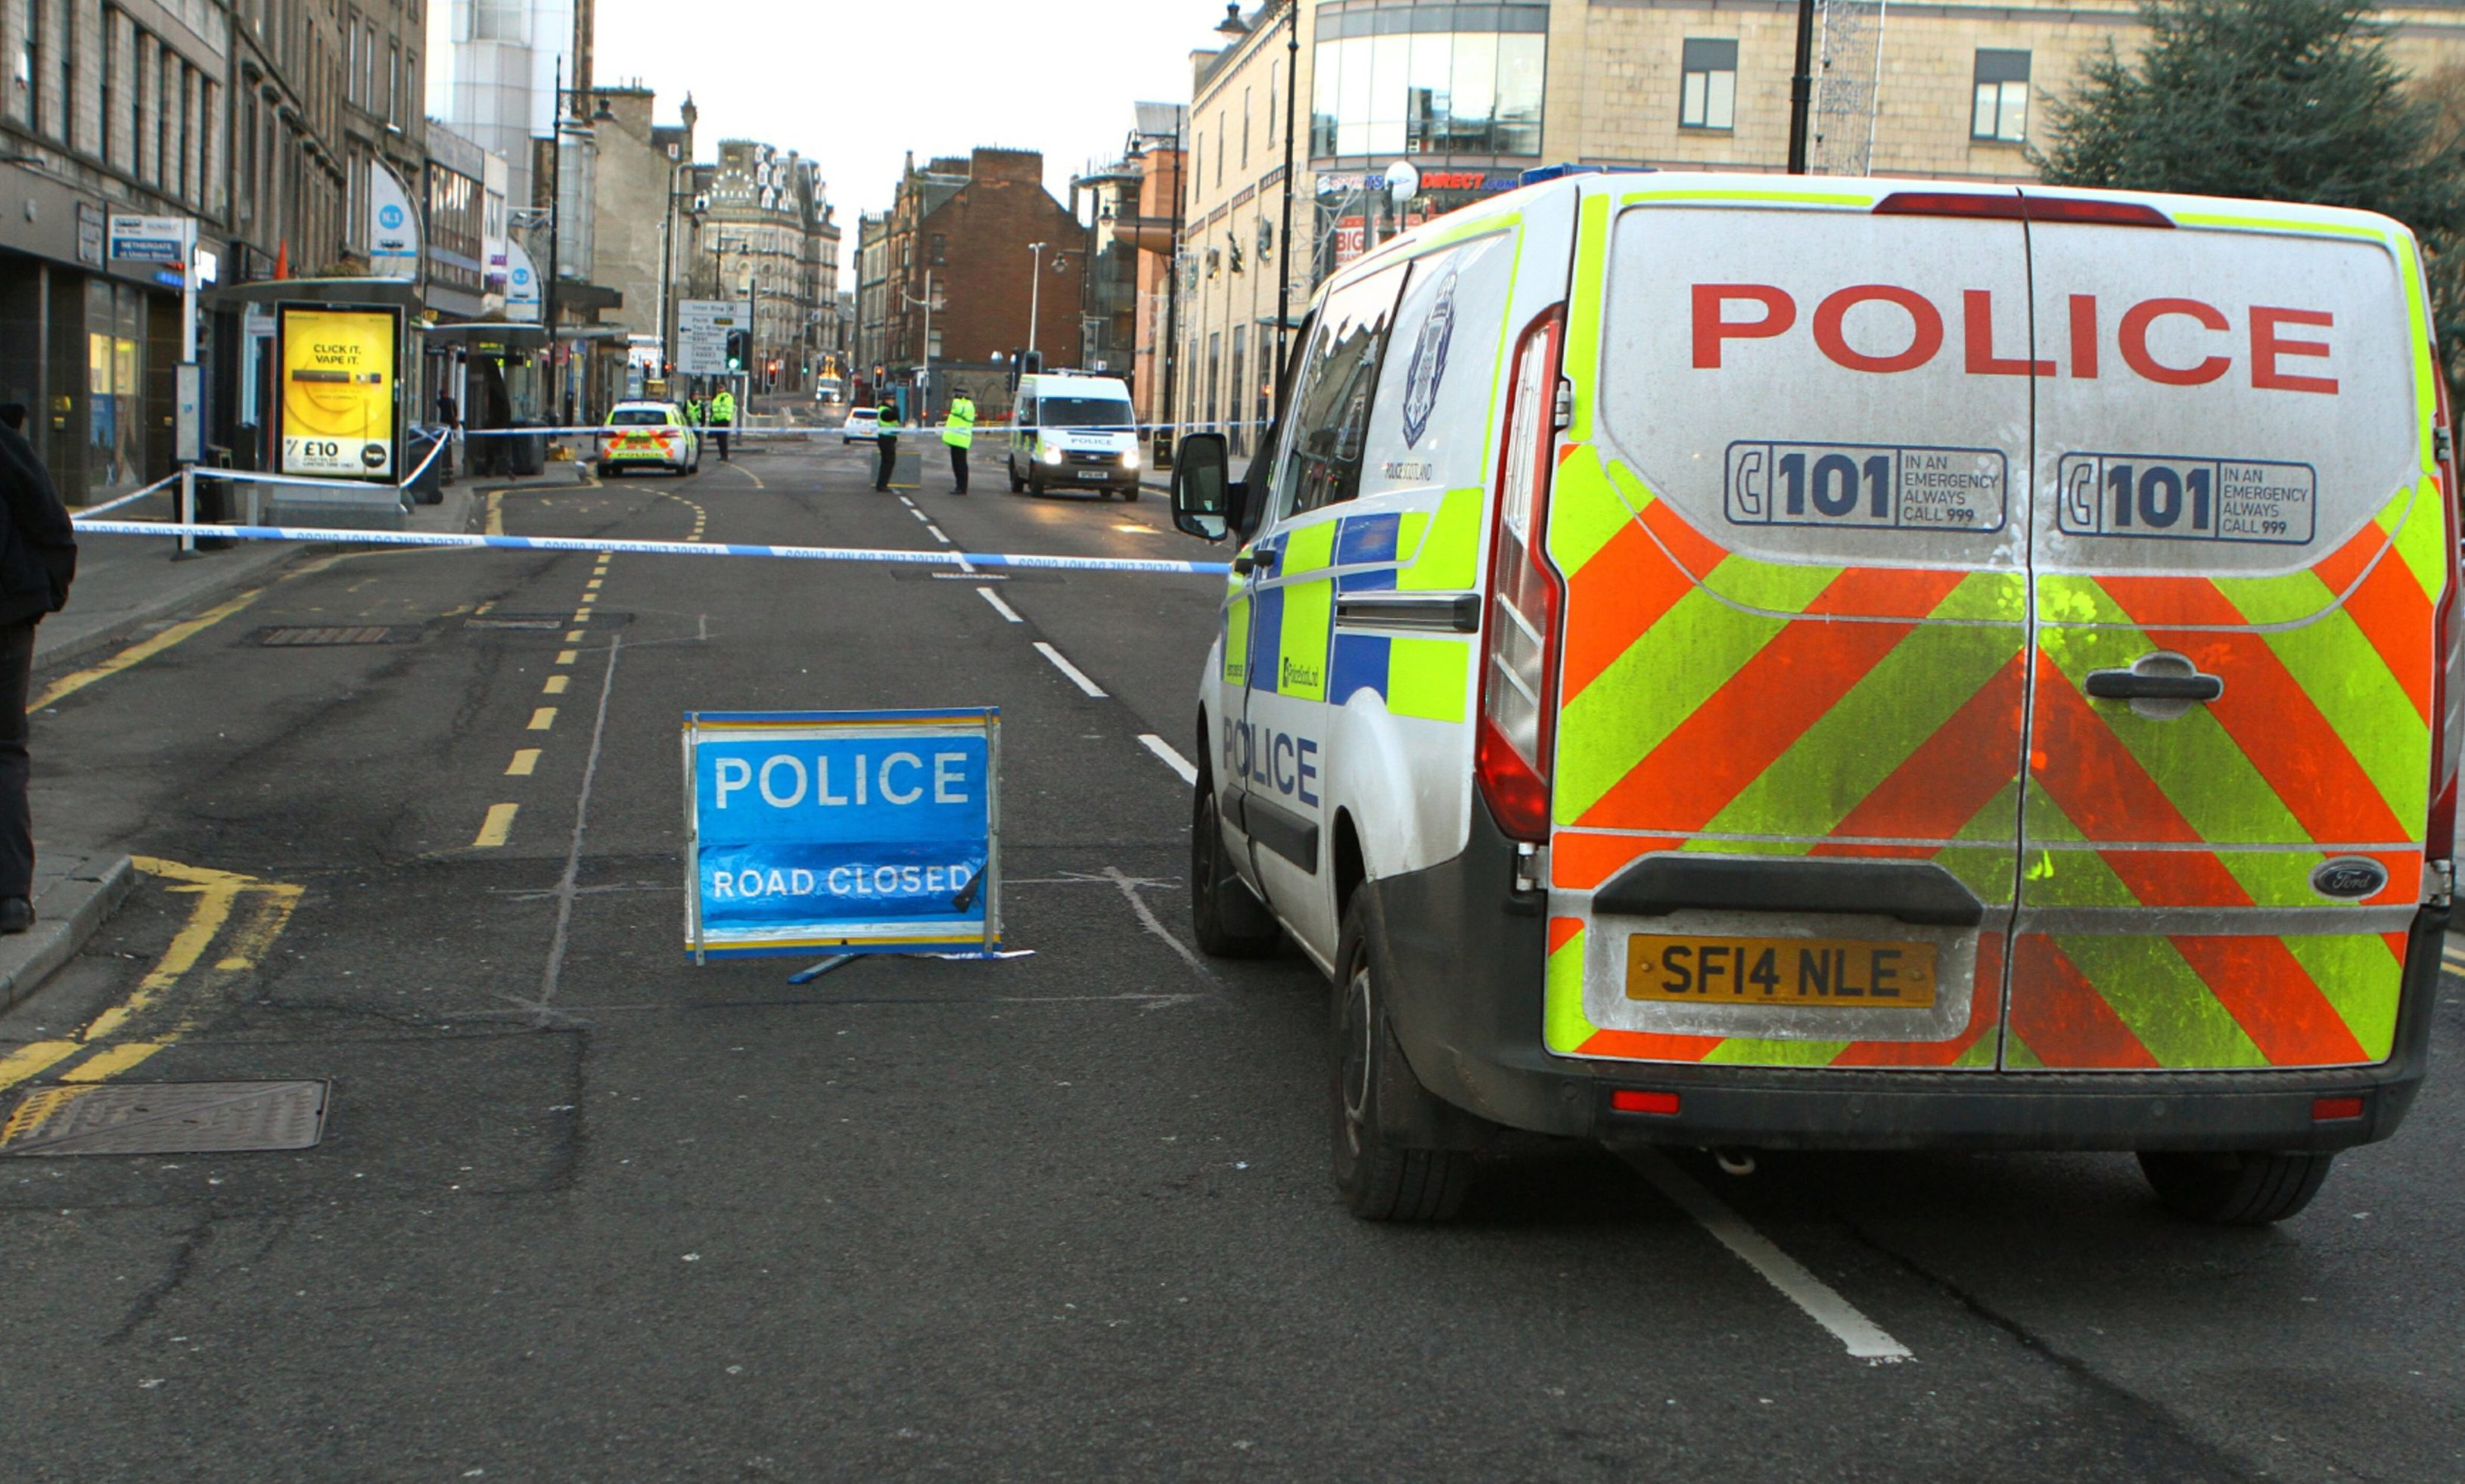 Police at the scene of the Nethergate incident at New Year.